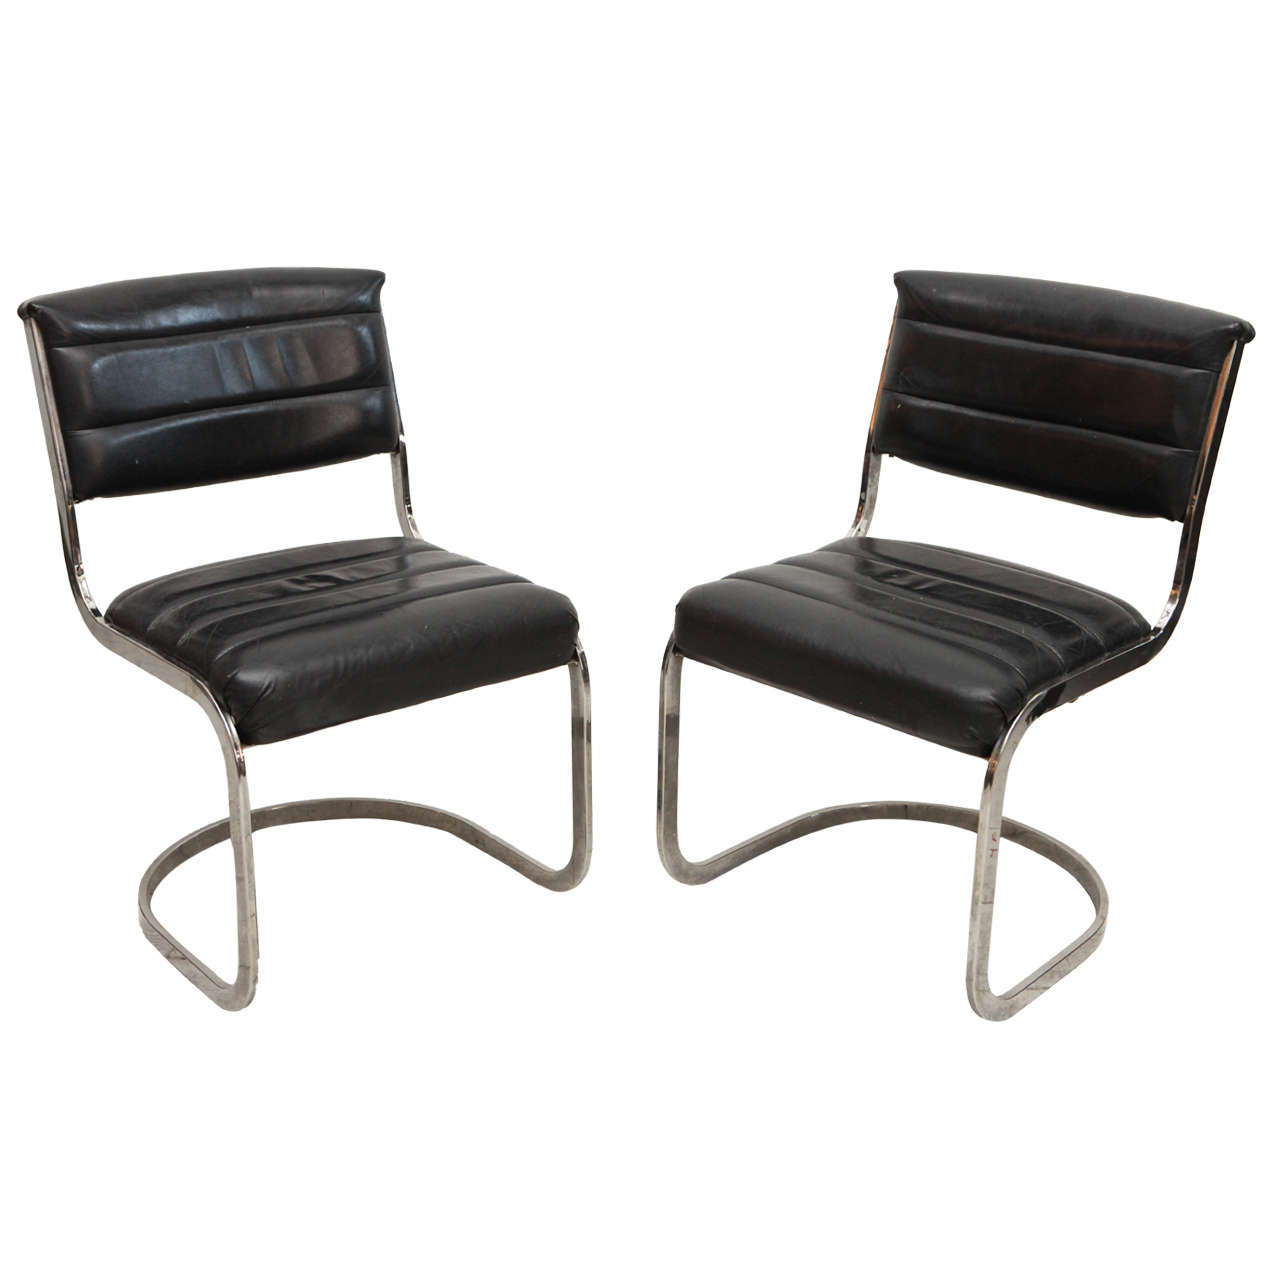 Popular 167 List Leather And Chrome Chairs